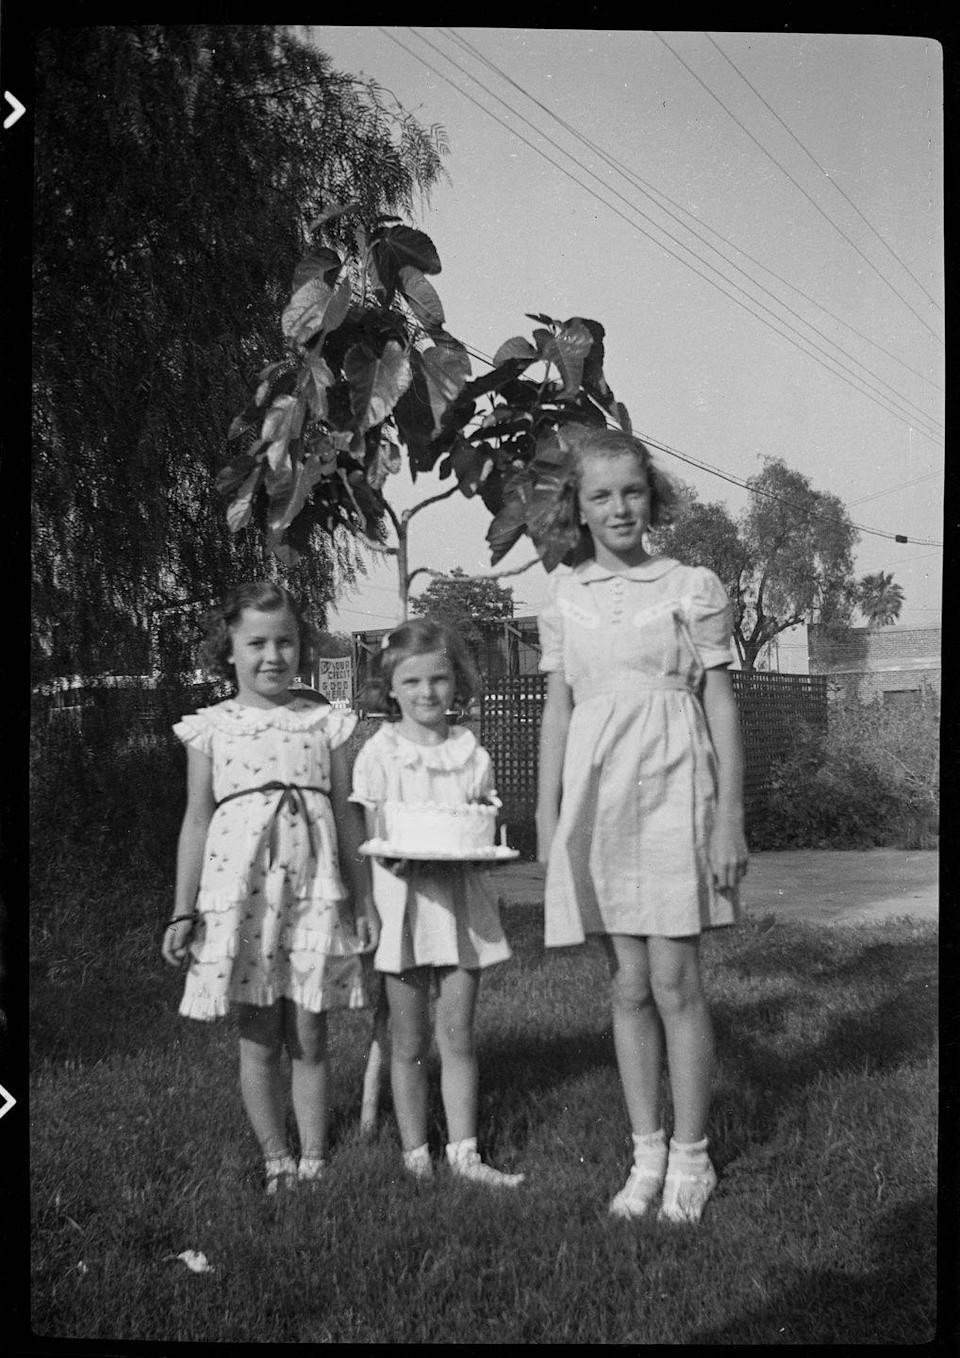 <p>Despite her tough childhood, Norma Jeane was still able to find moments of happiness, like this birthday celebration with two of her friends. <br></p>